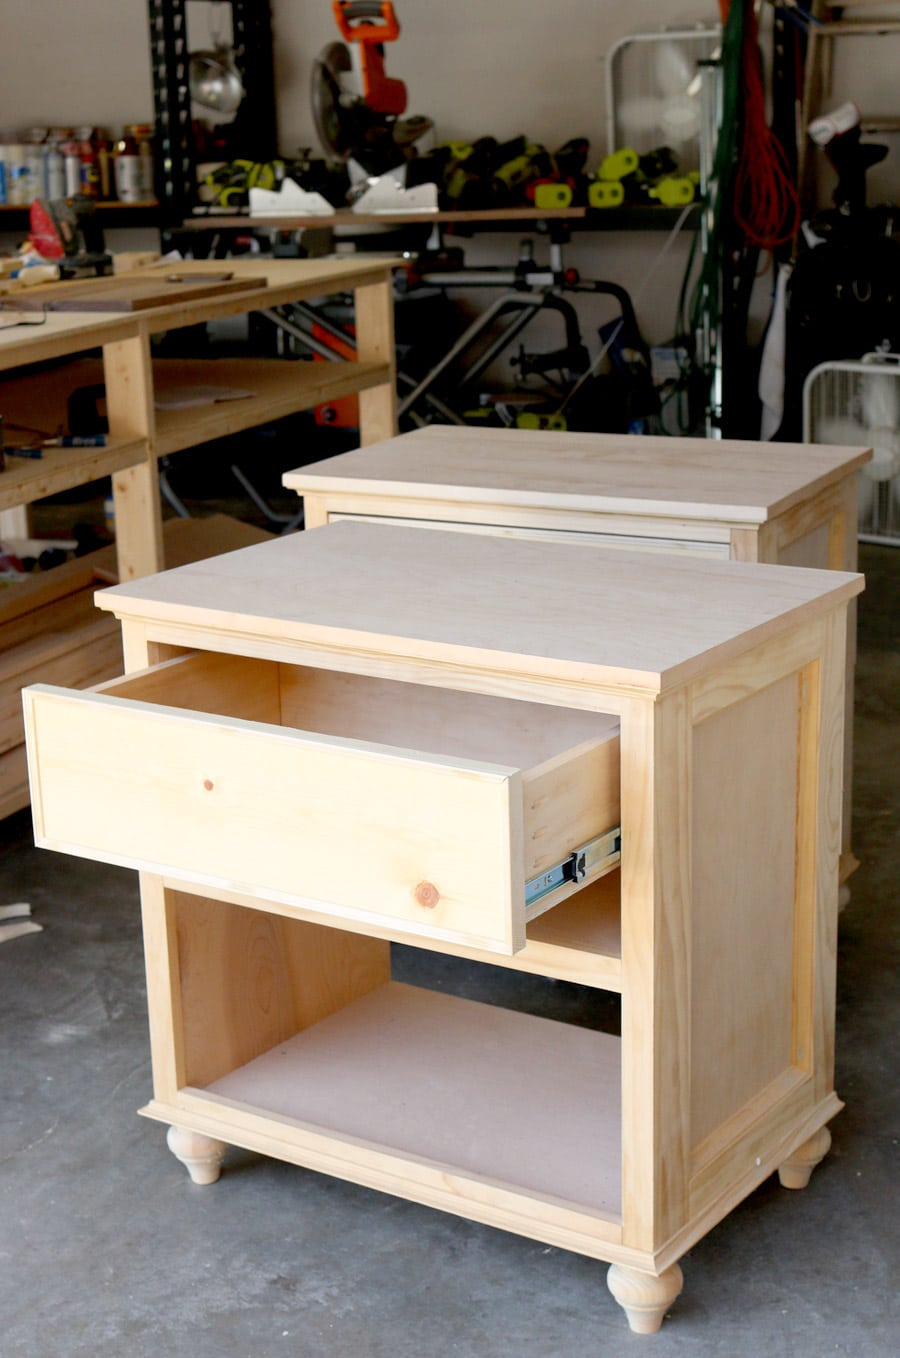 How to build diy nightstand bedside tables Night table ideas